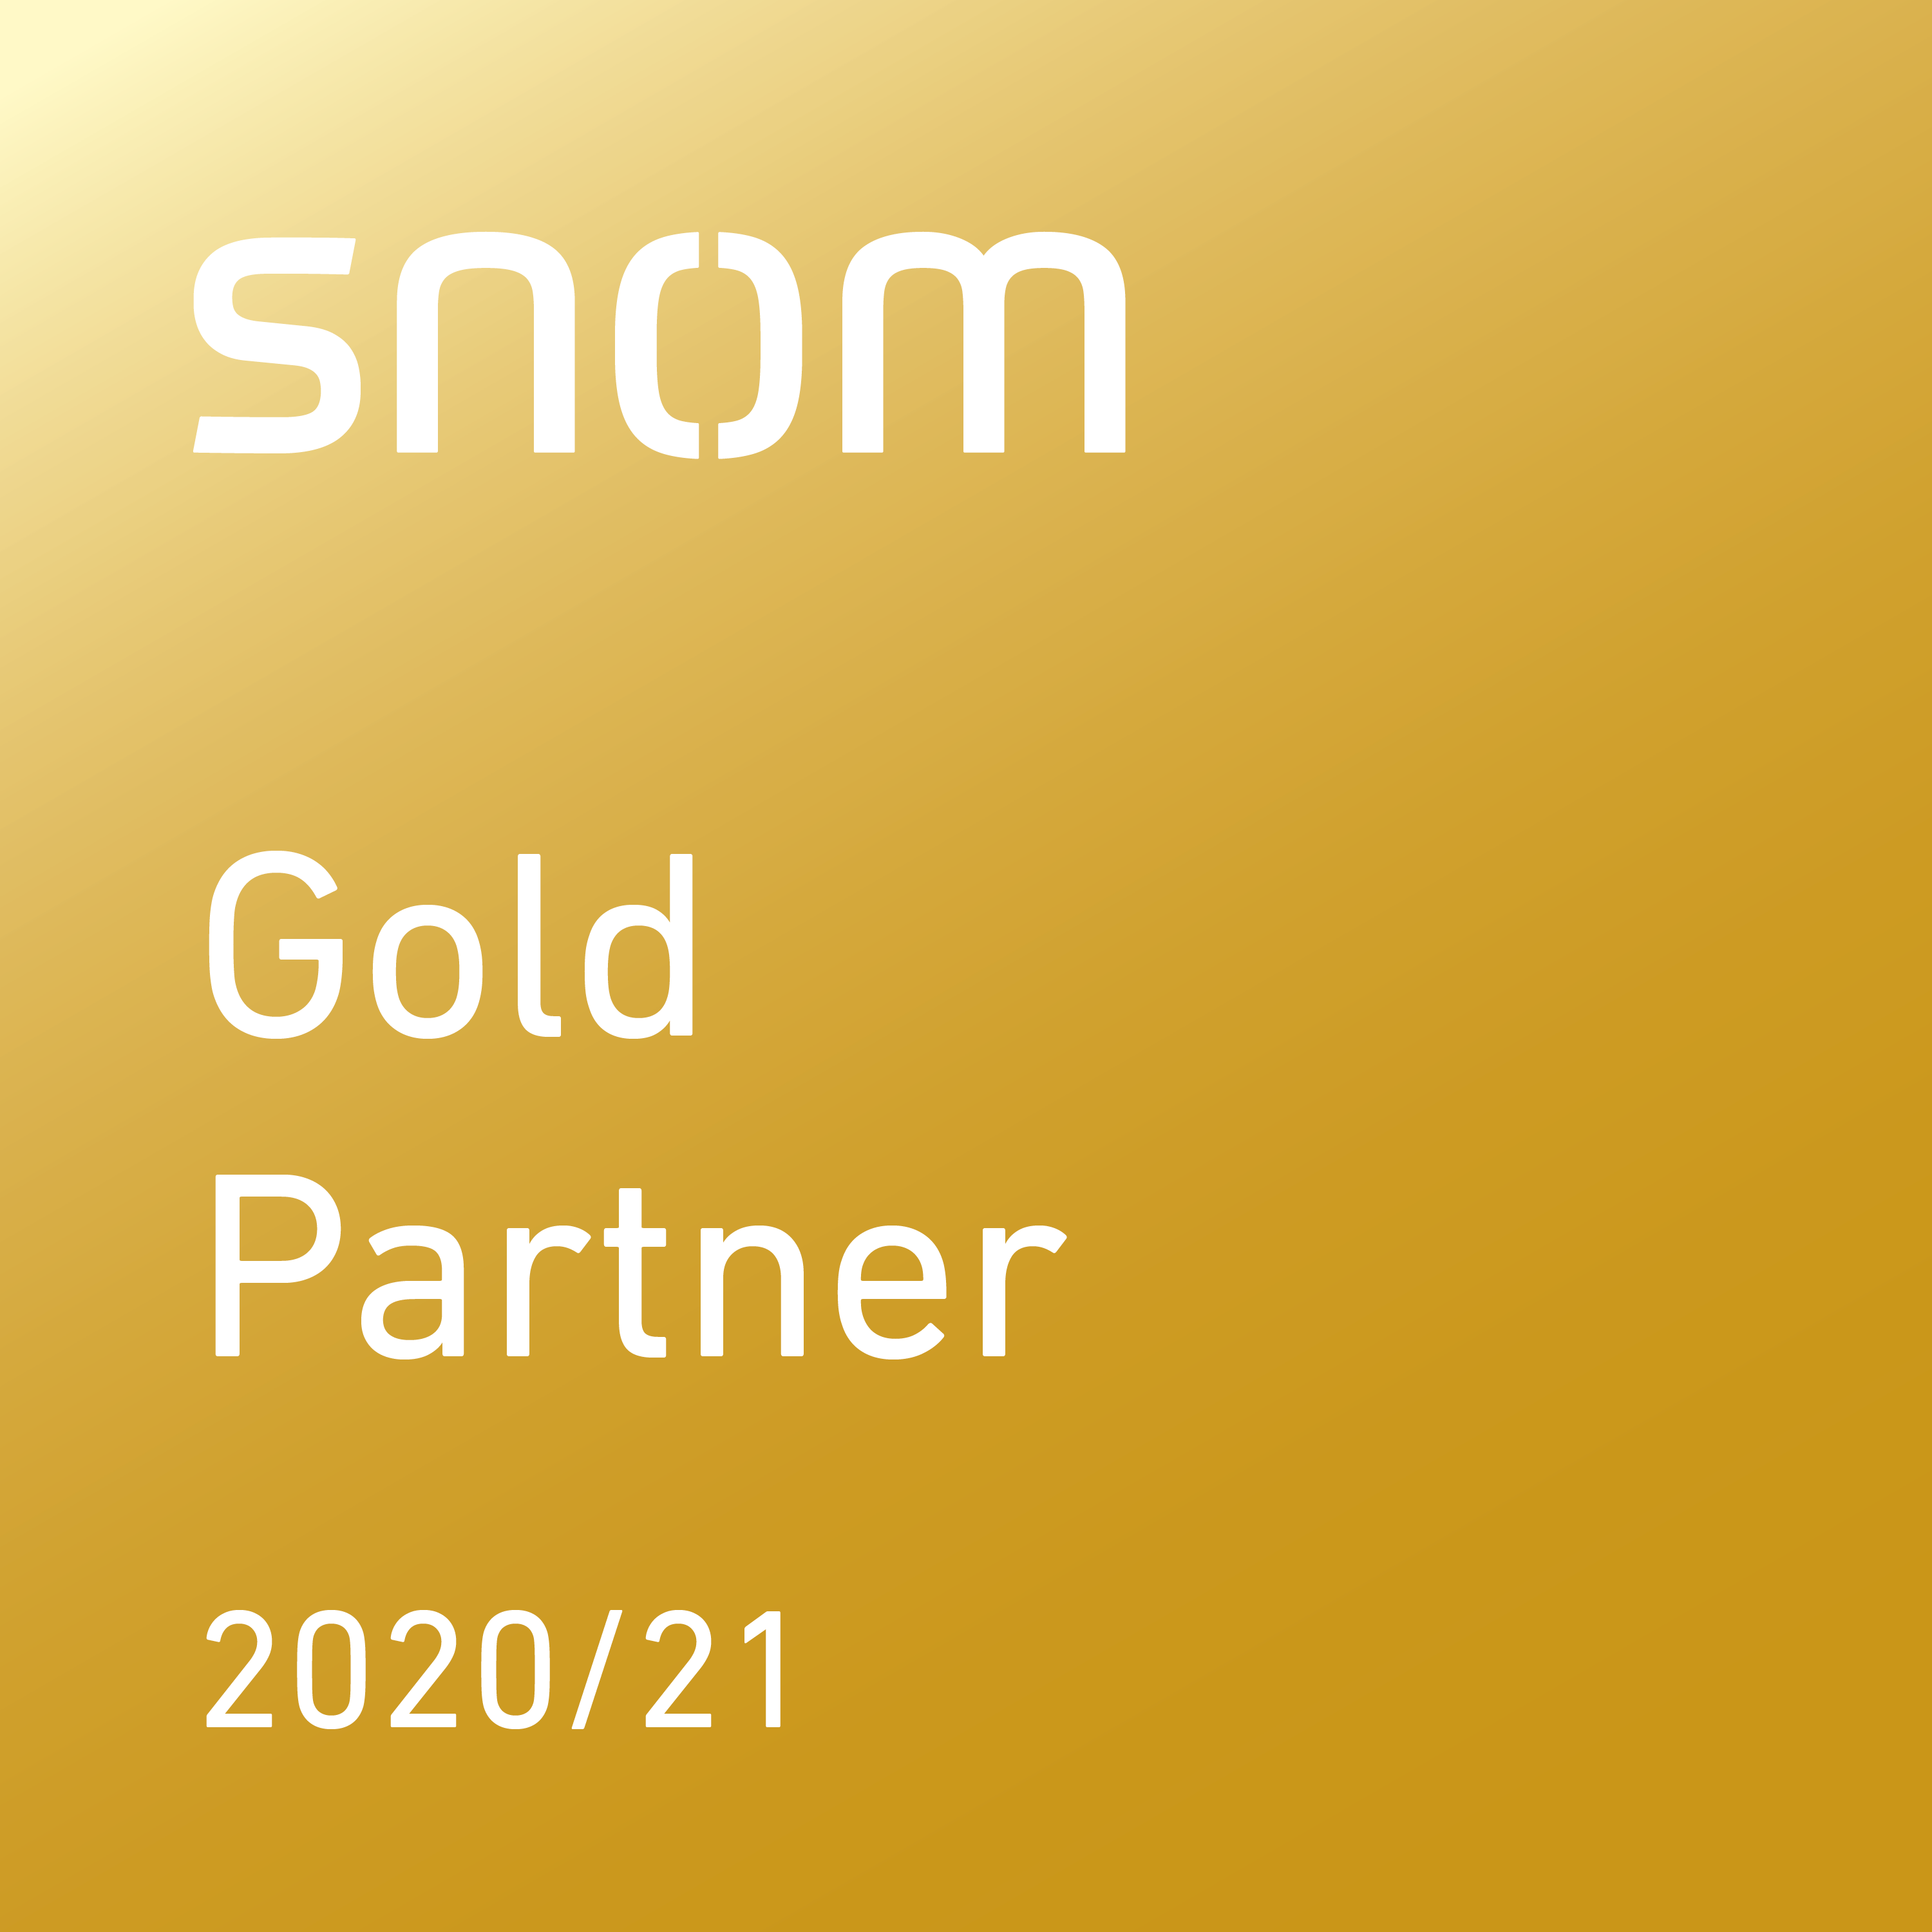 Snom Gold Partner logo